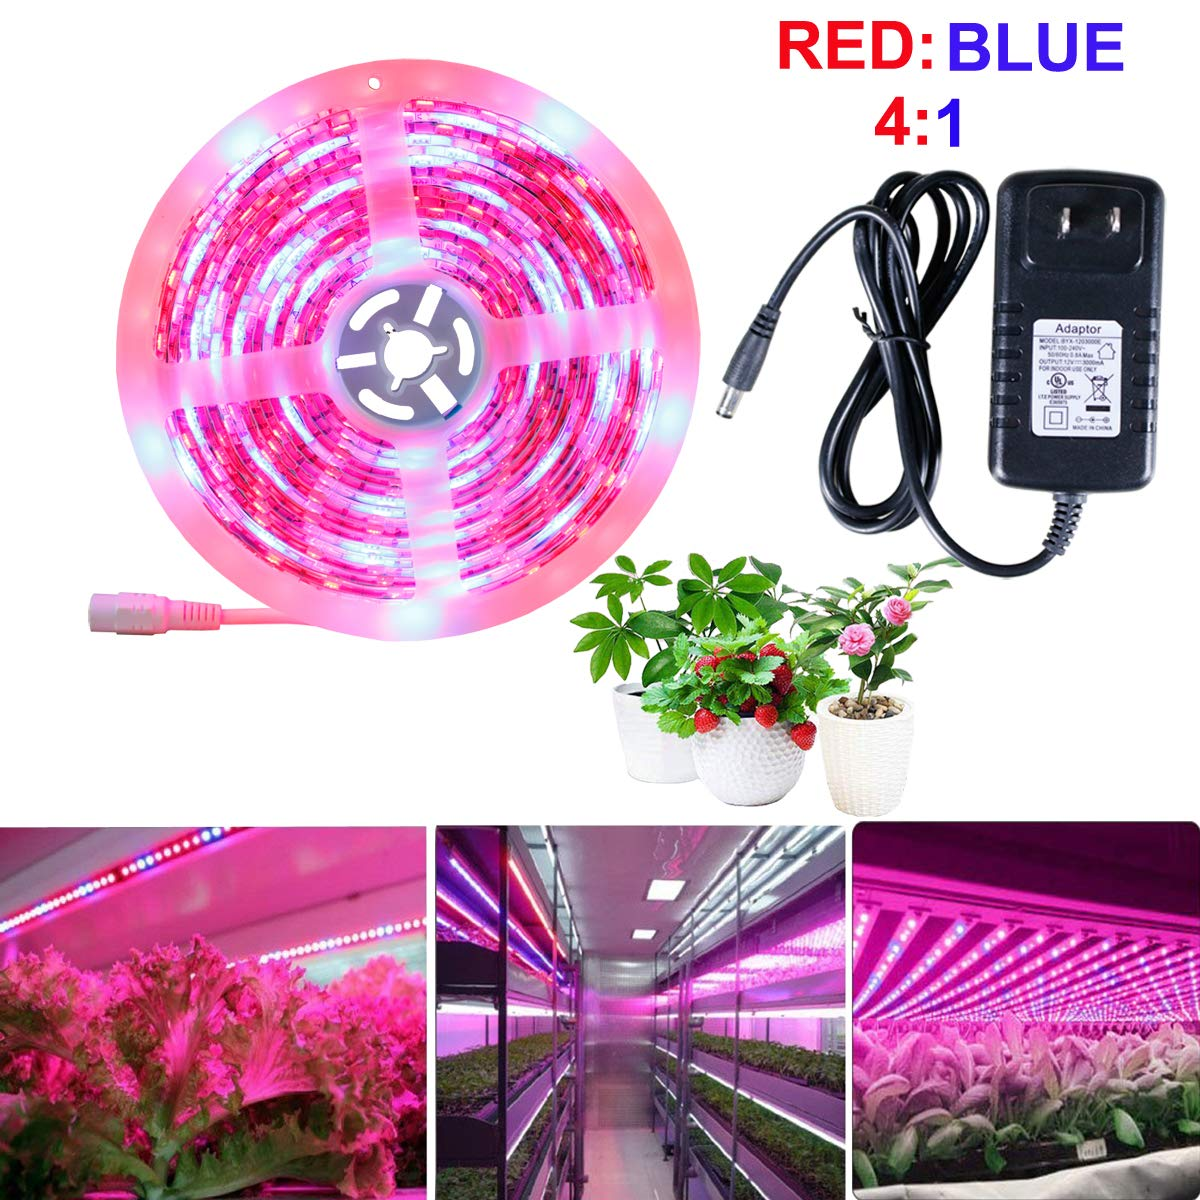 LED Strip Light SELIAN LED Plant Grow Strip Light with 12V Power Adapter 16.4ft 5m 5050 Waterproof Full Spectrum RED Blue 4 1 Rope Light for Aquarium Greenhouse Hydroponic Plant Garden Flowers